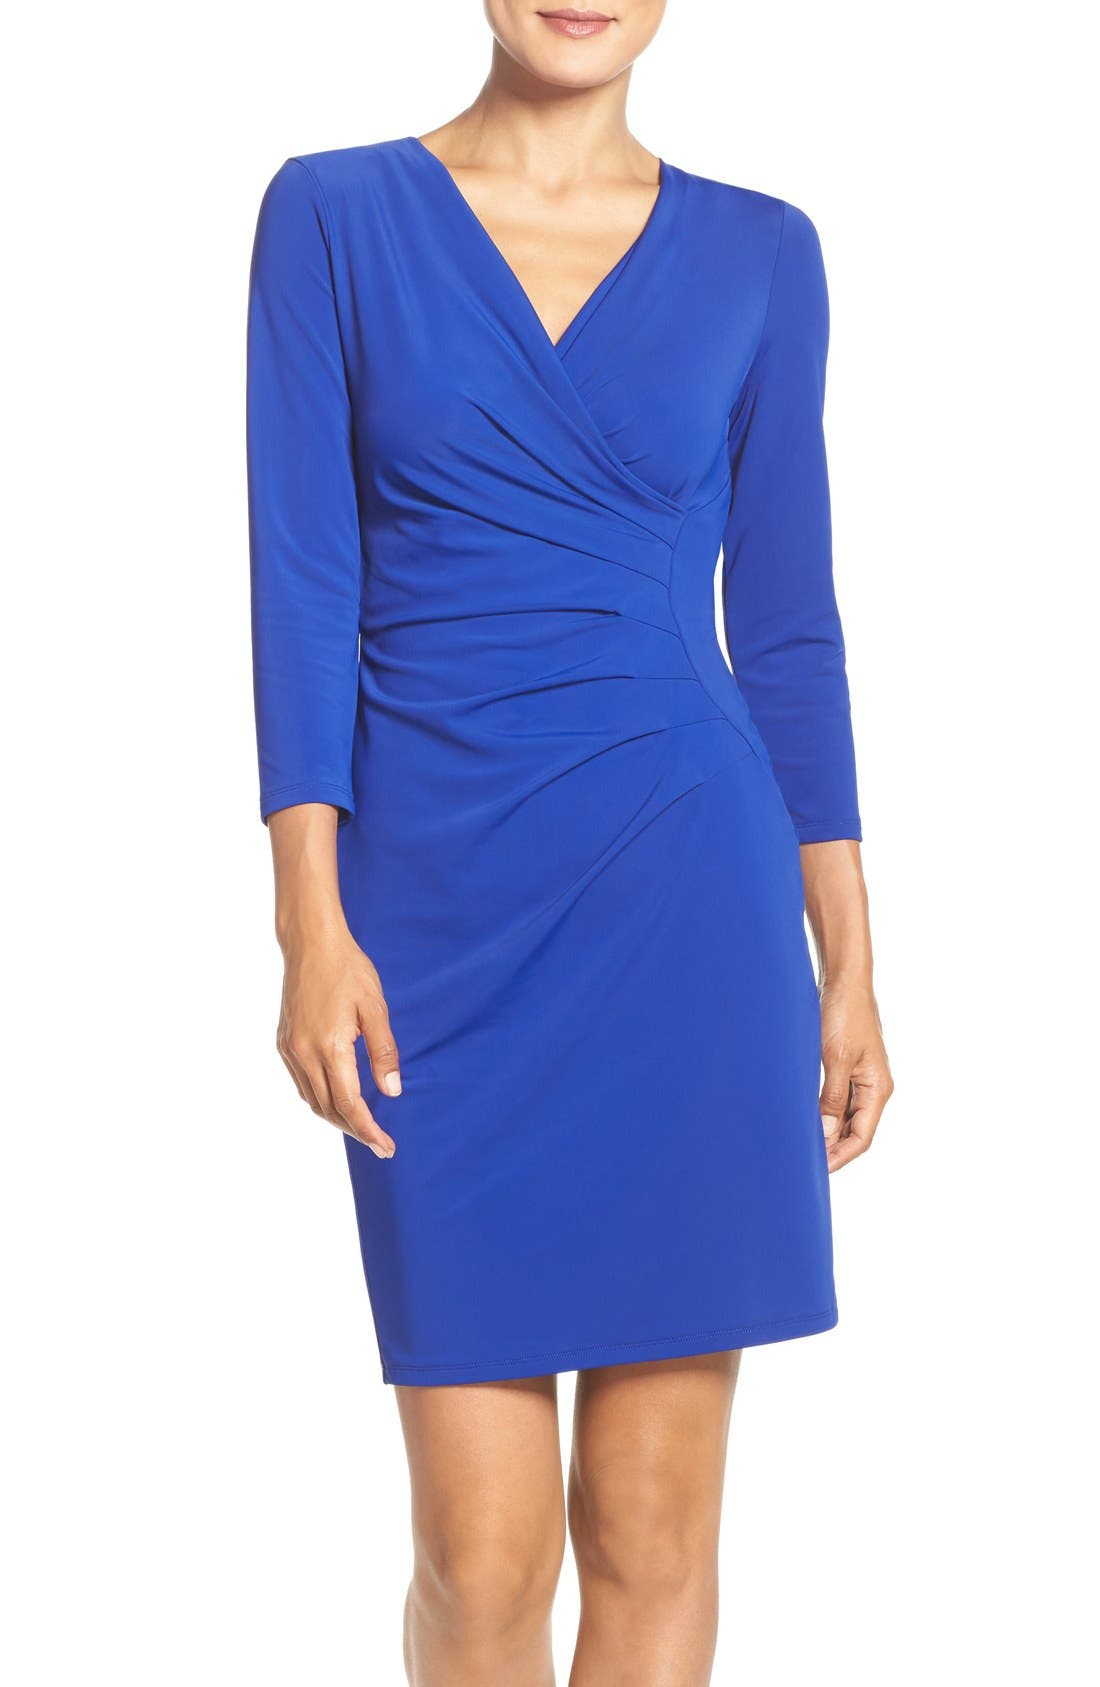 Alternate Image 1 Selected - Adrianna Papell Stretch Faux Wrap Dress (Regular & Petite)